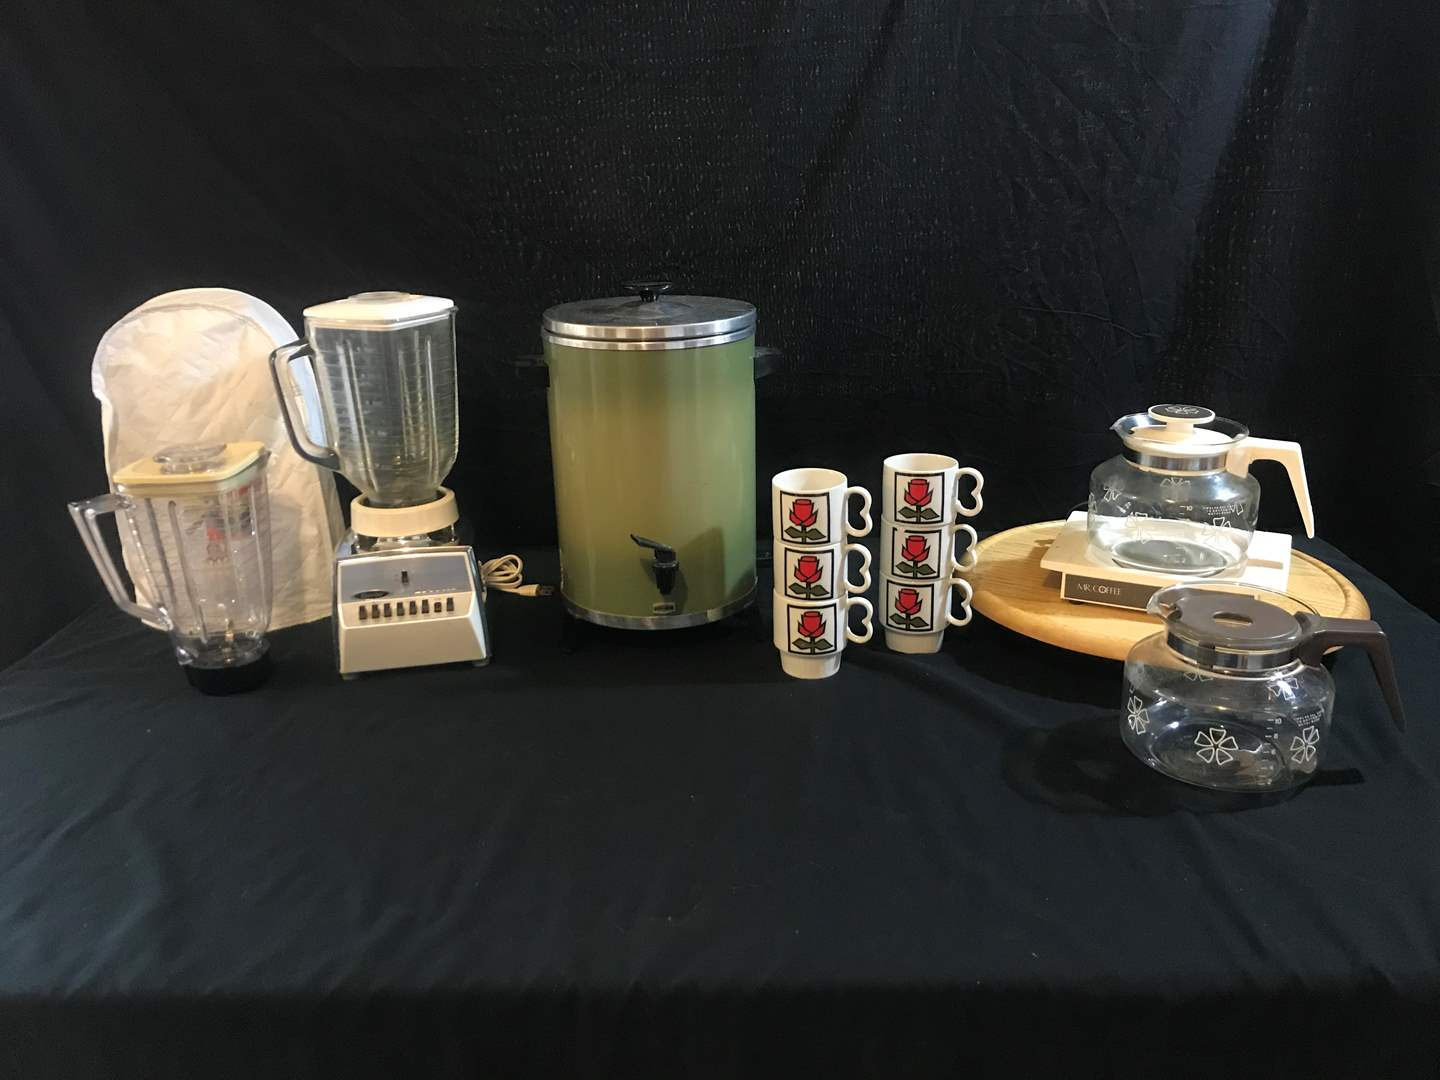 Lot # 67 - Westbend Coffee Maker, Osterizer Blender, Mr. Coffee Pot Warmer & Coffee Mugs (main image)